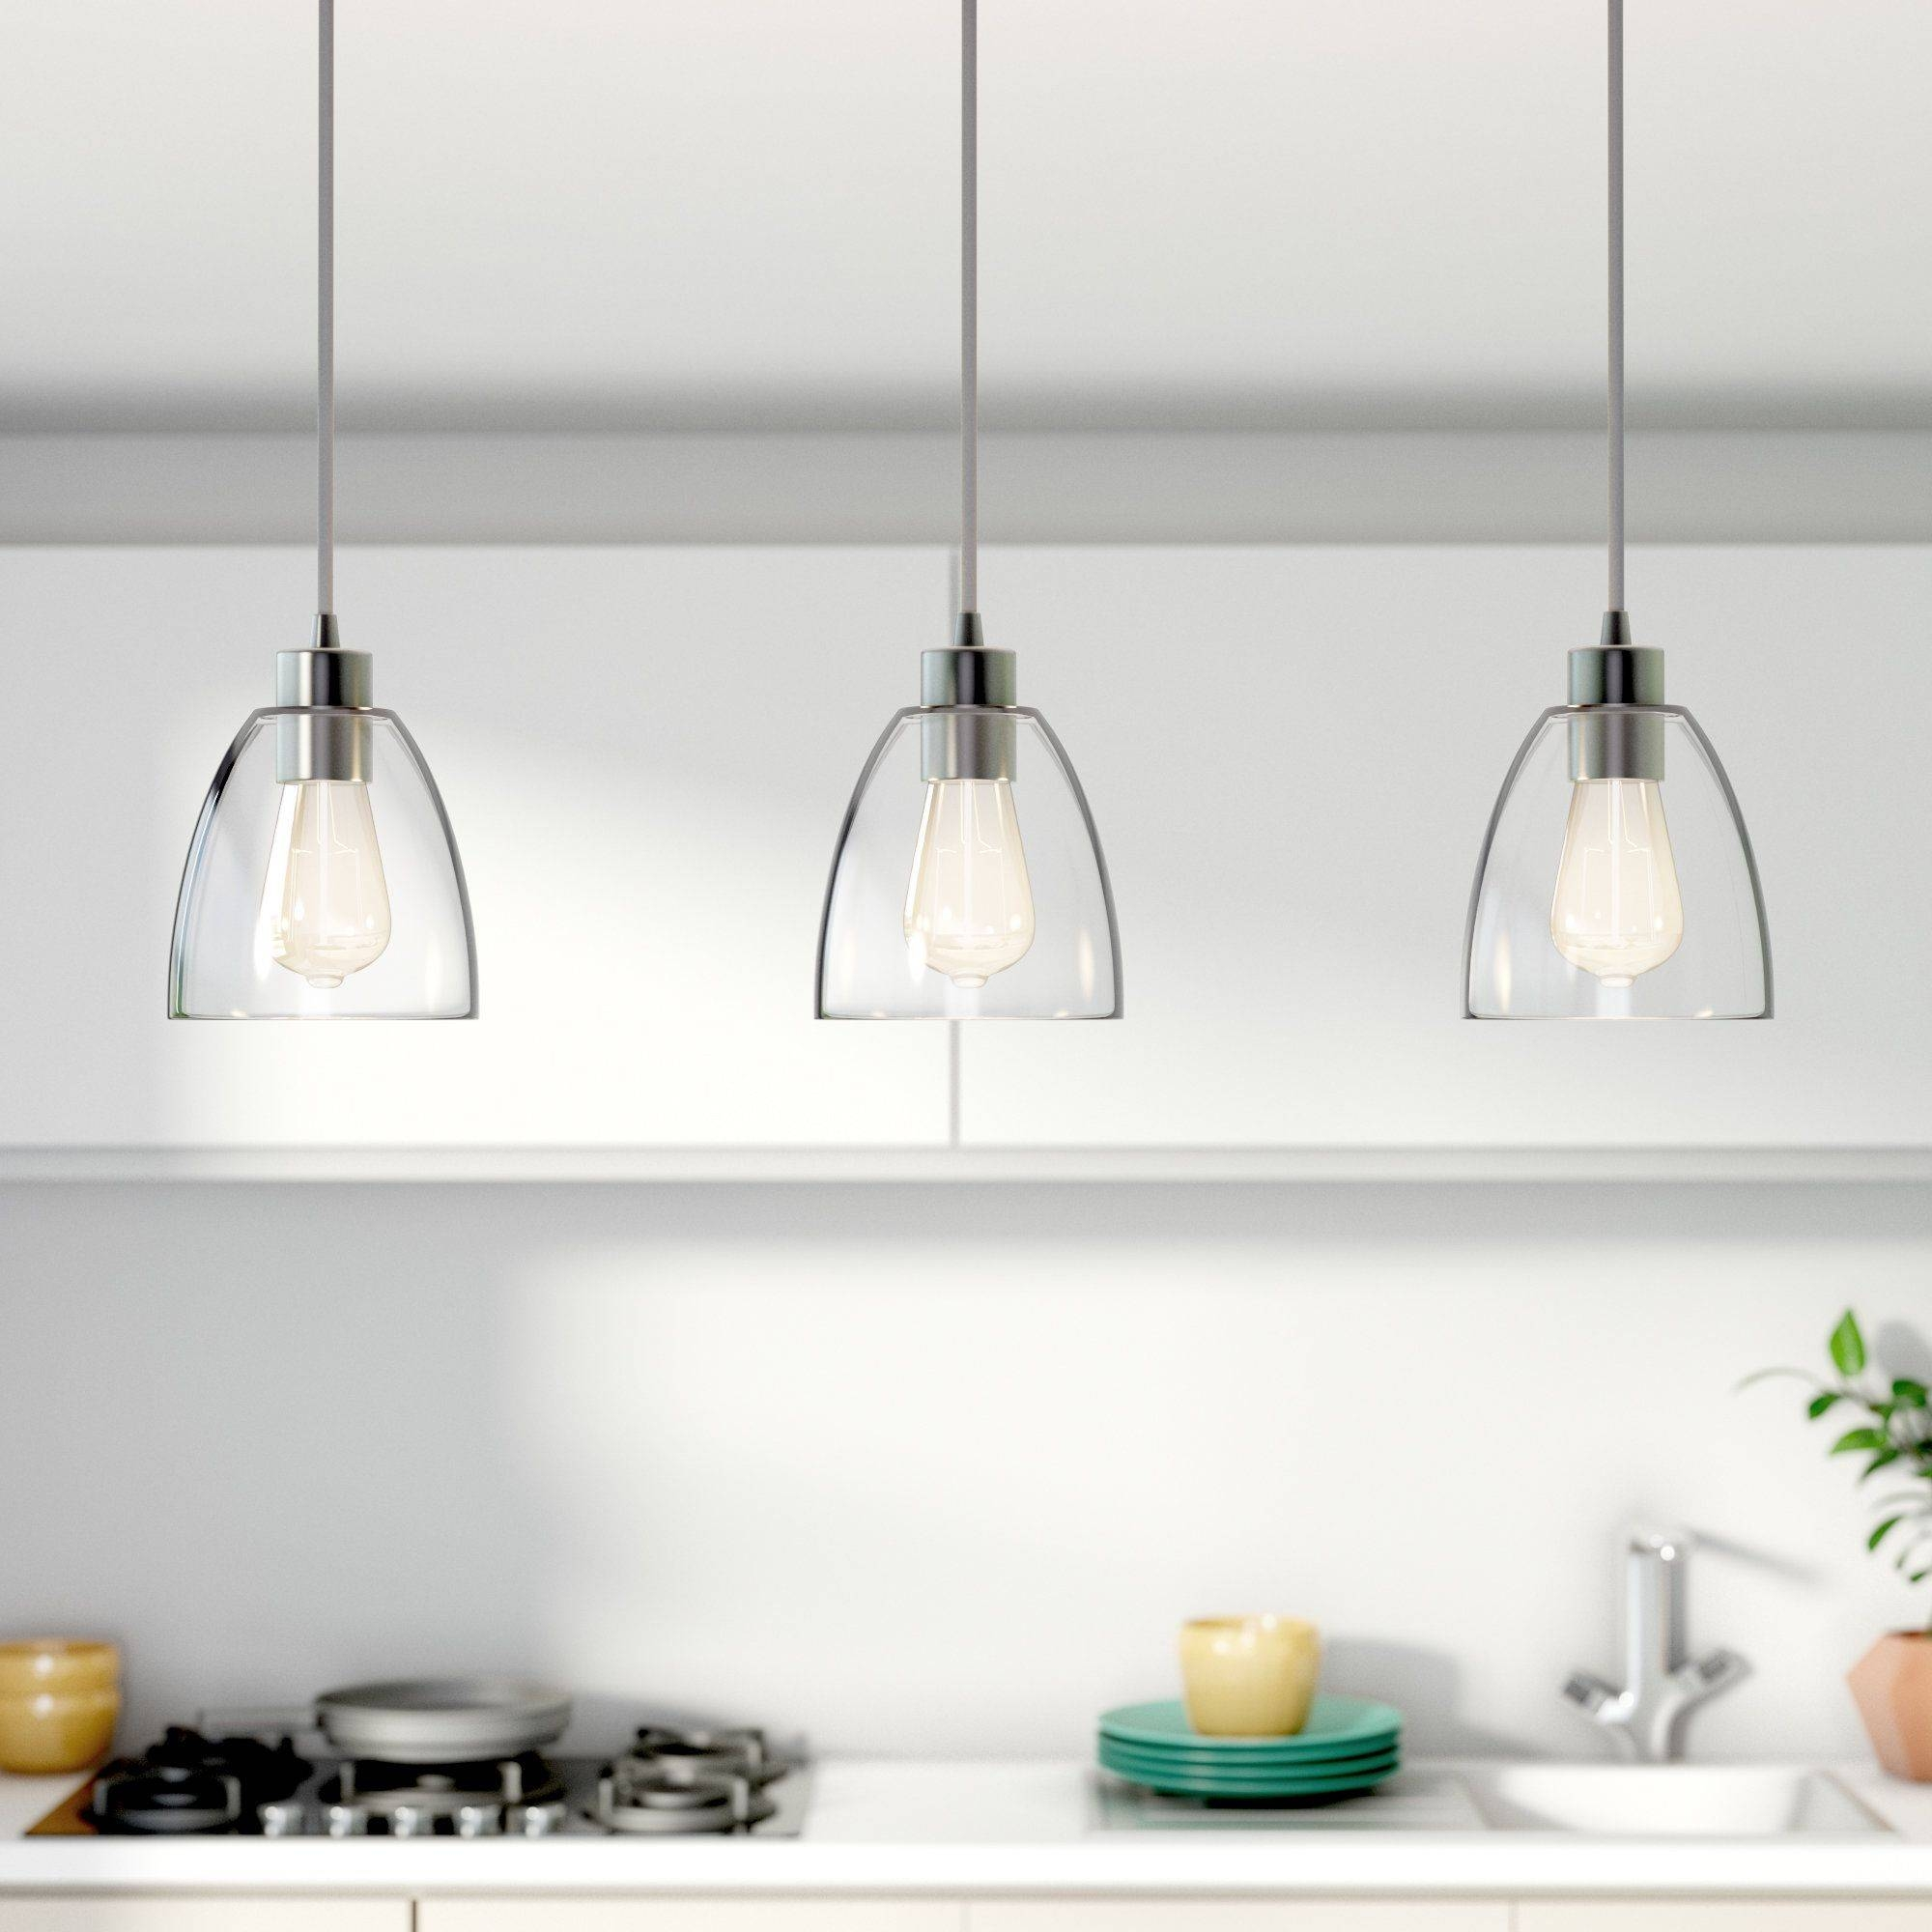 Kitchen : 3 Light Pendant Island Kitchen Lighting Best Pendant Pertaining To 3 Light Pendants For Island Kitchen Lighting (View 7 of 15)